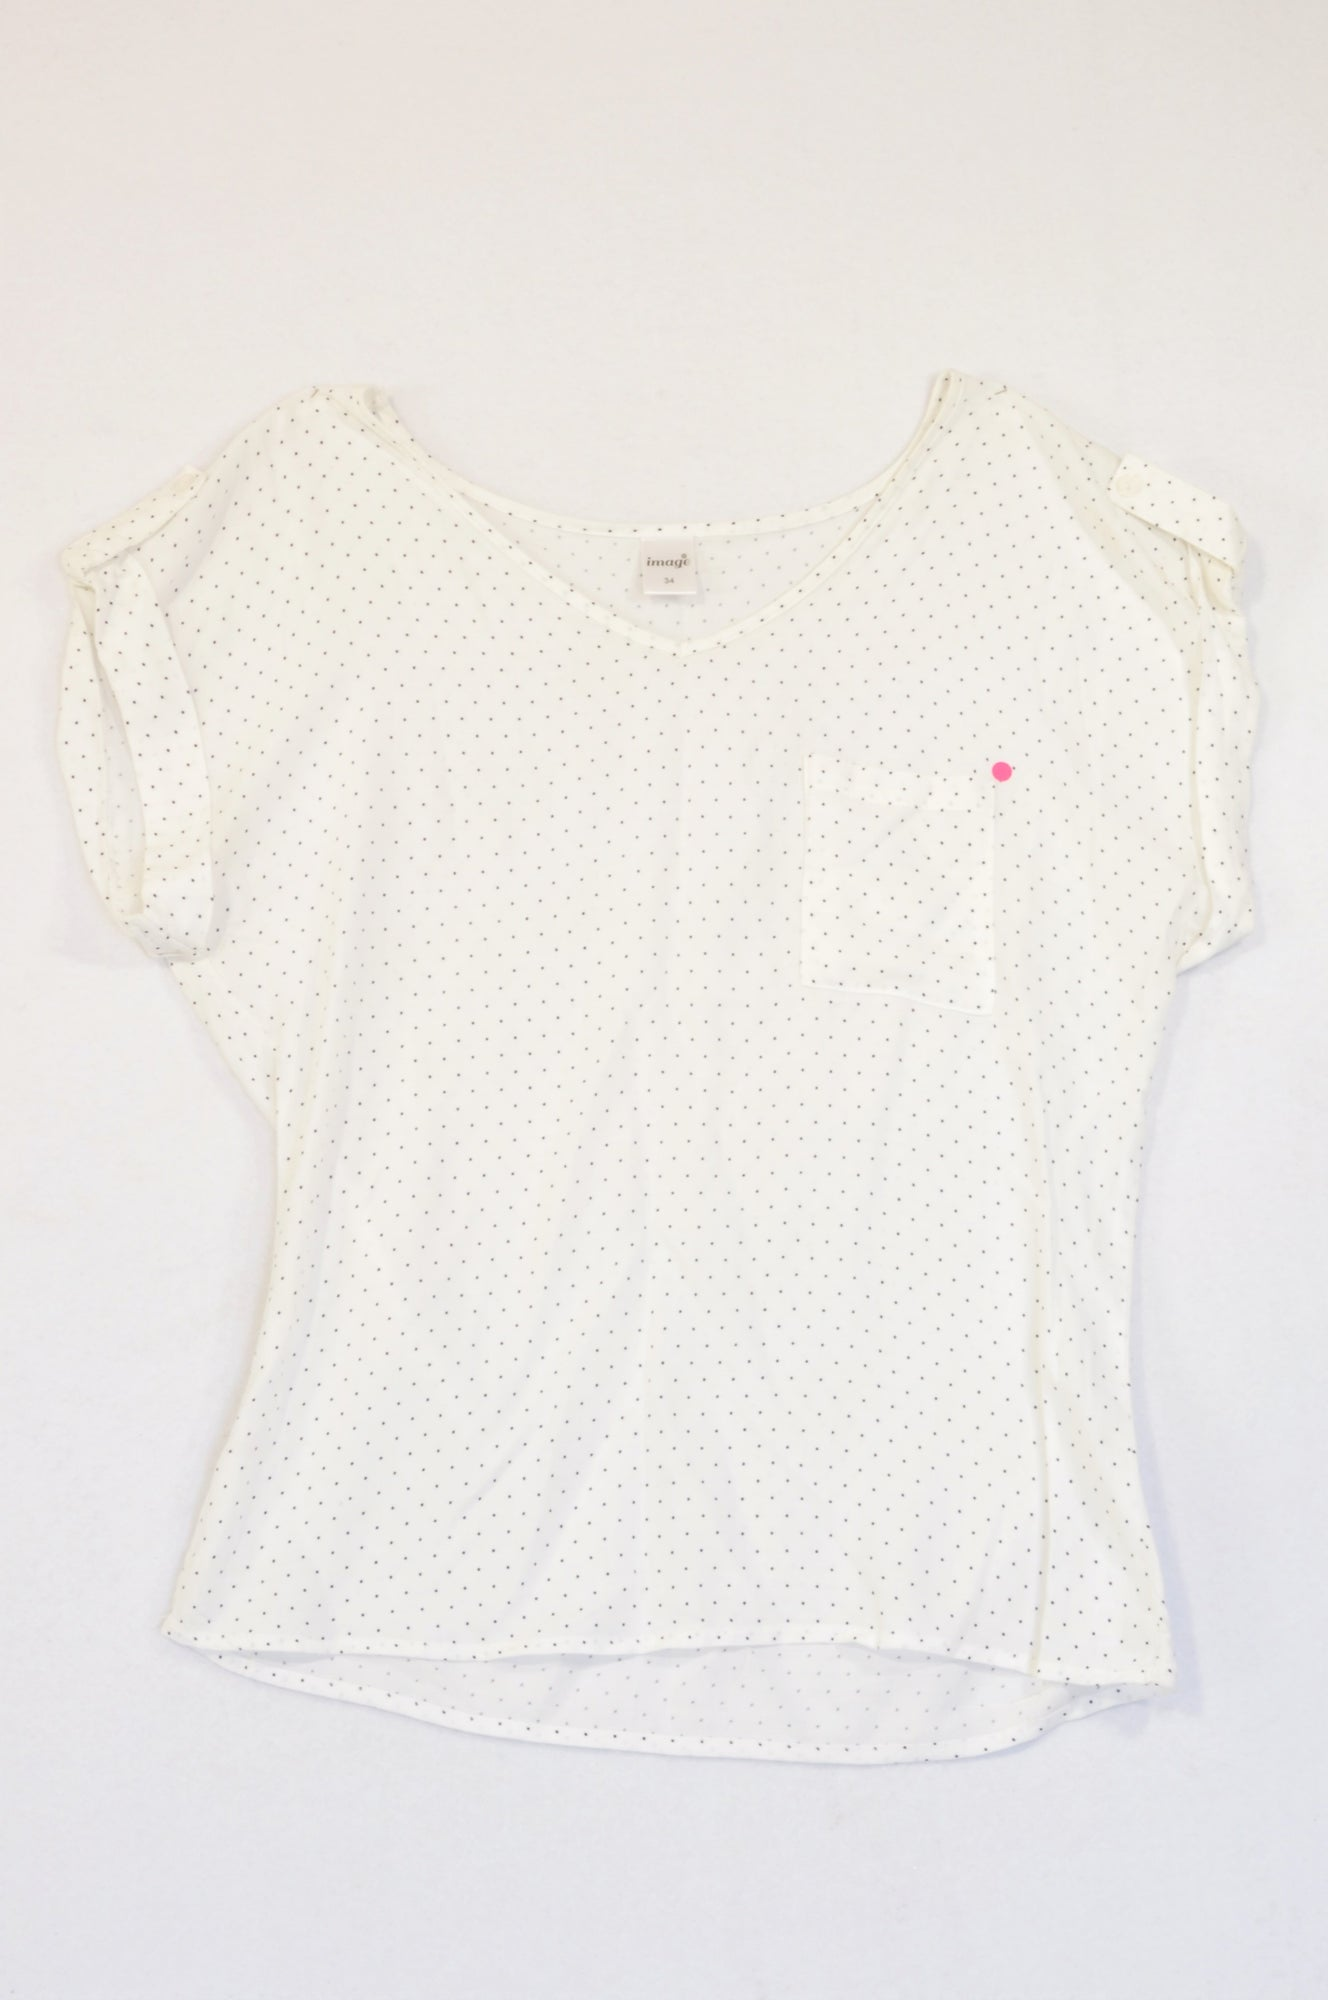 Image White Navy Dot Pocket Blouse Women Size 34